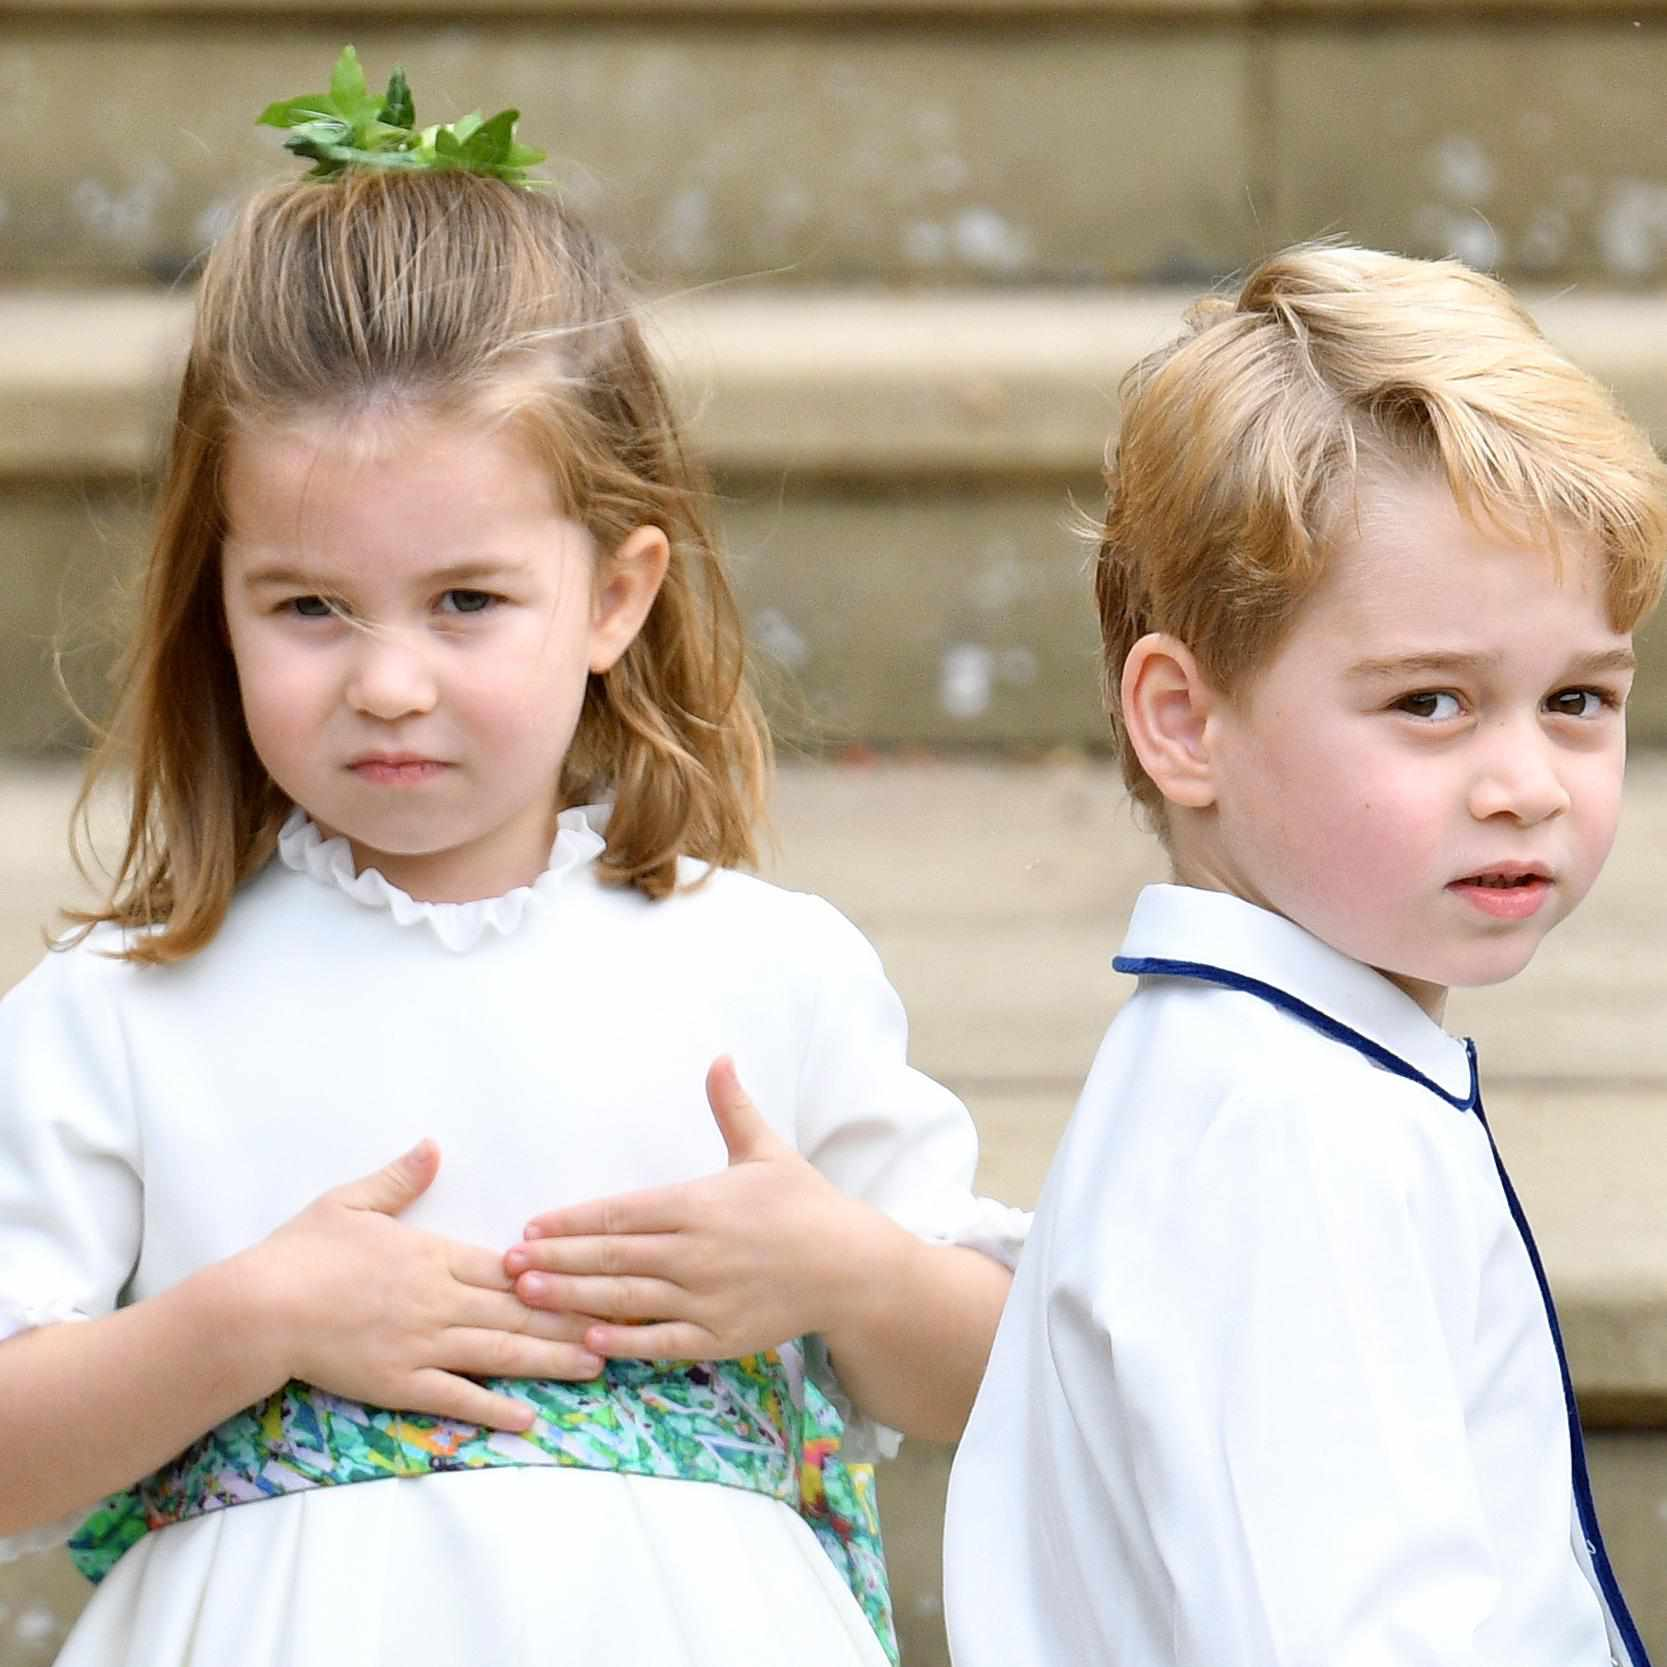 Prince George and Princess Charlotte Will Serve As Bridal Attendants In The Wedding Of Thomas van Straubenzee to Lucy Lanigan-O'Keeffe